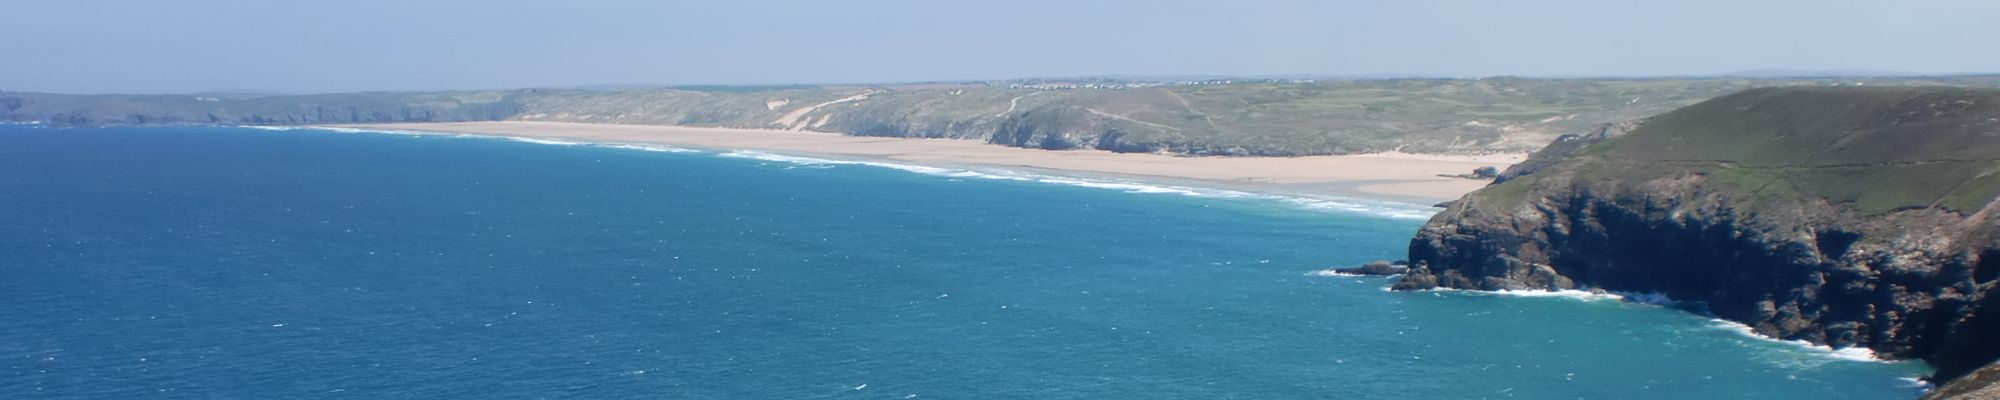 View arriving at Perranporth beach